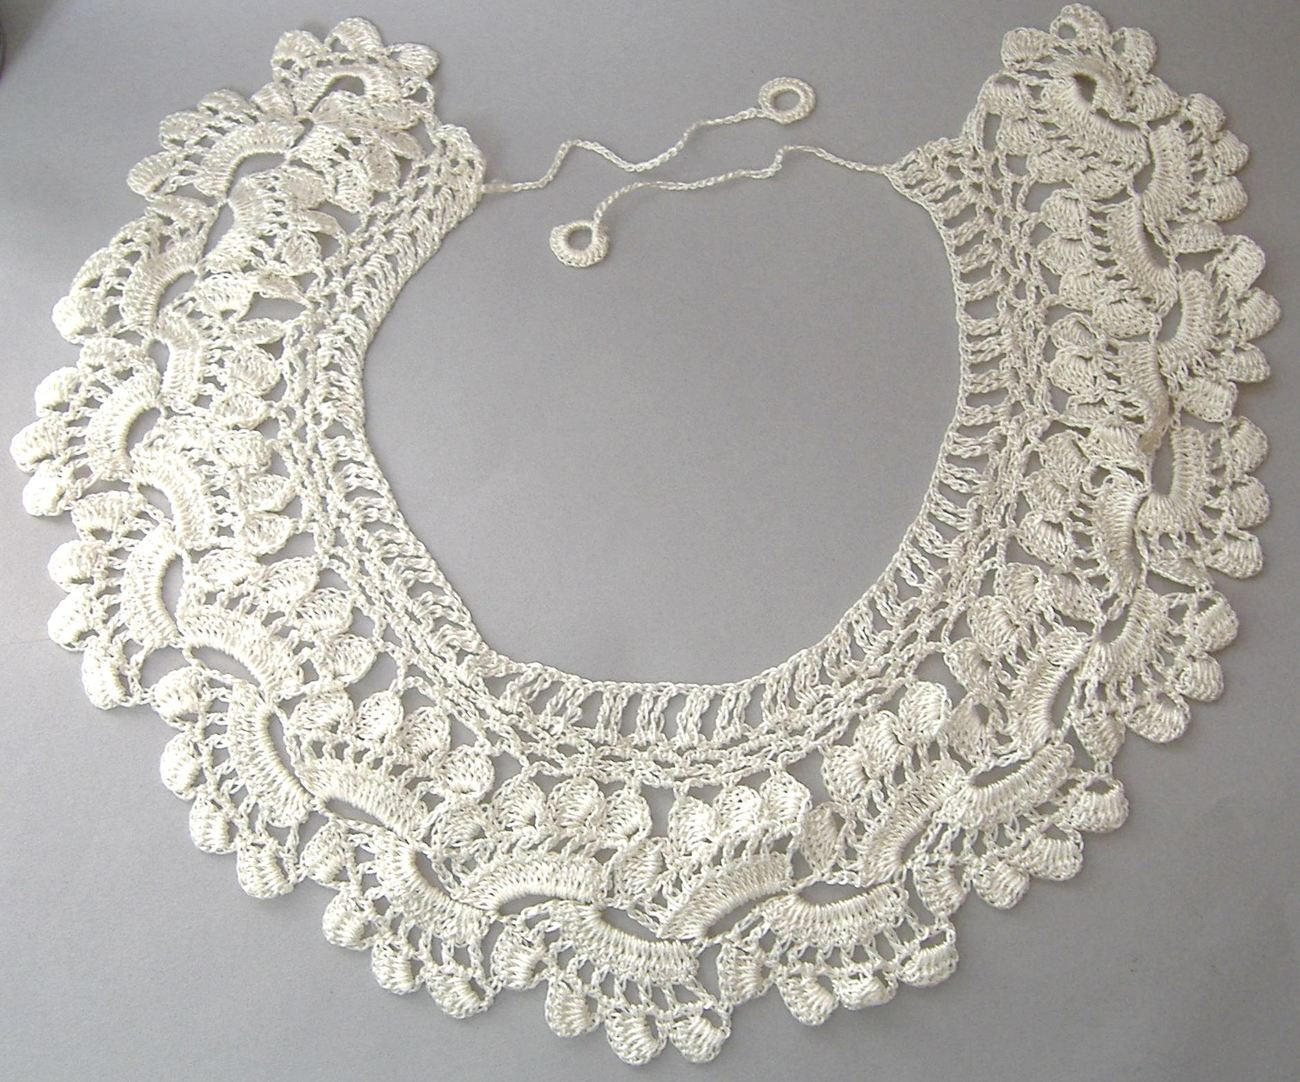 Collar Crocheted White Blouse Dress Sweater Yolk Bib Vintage